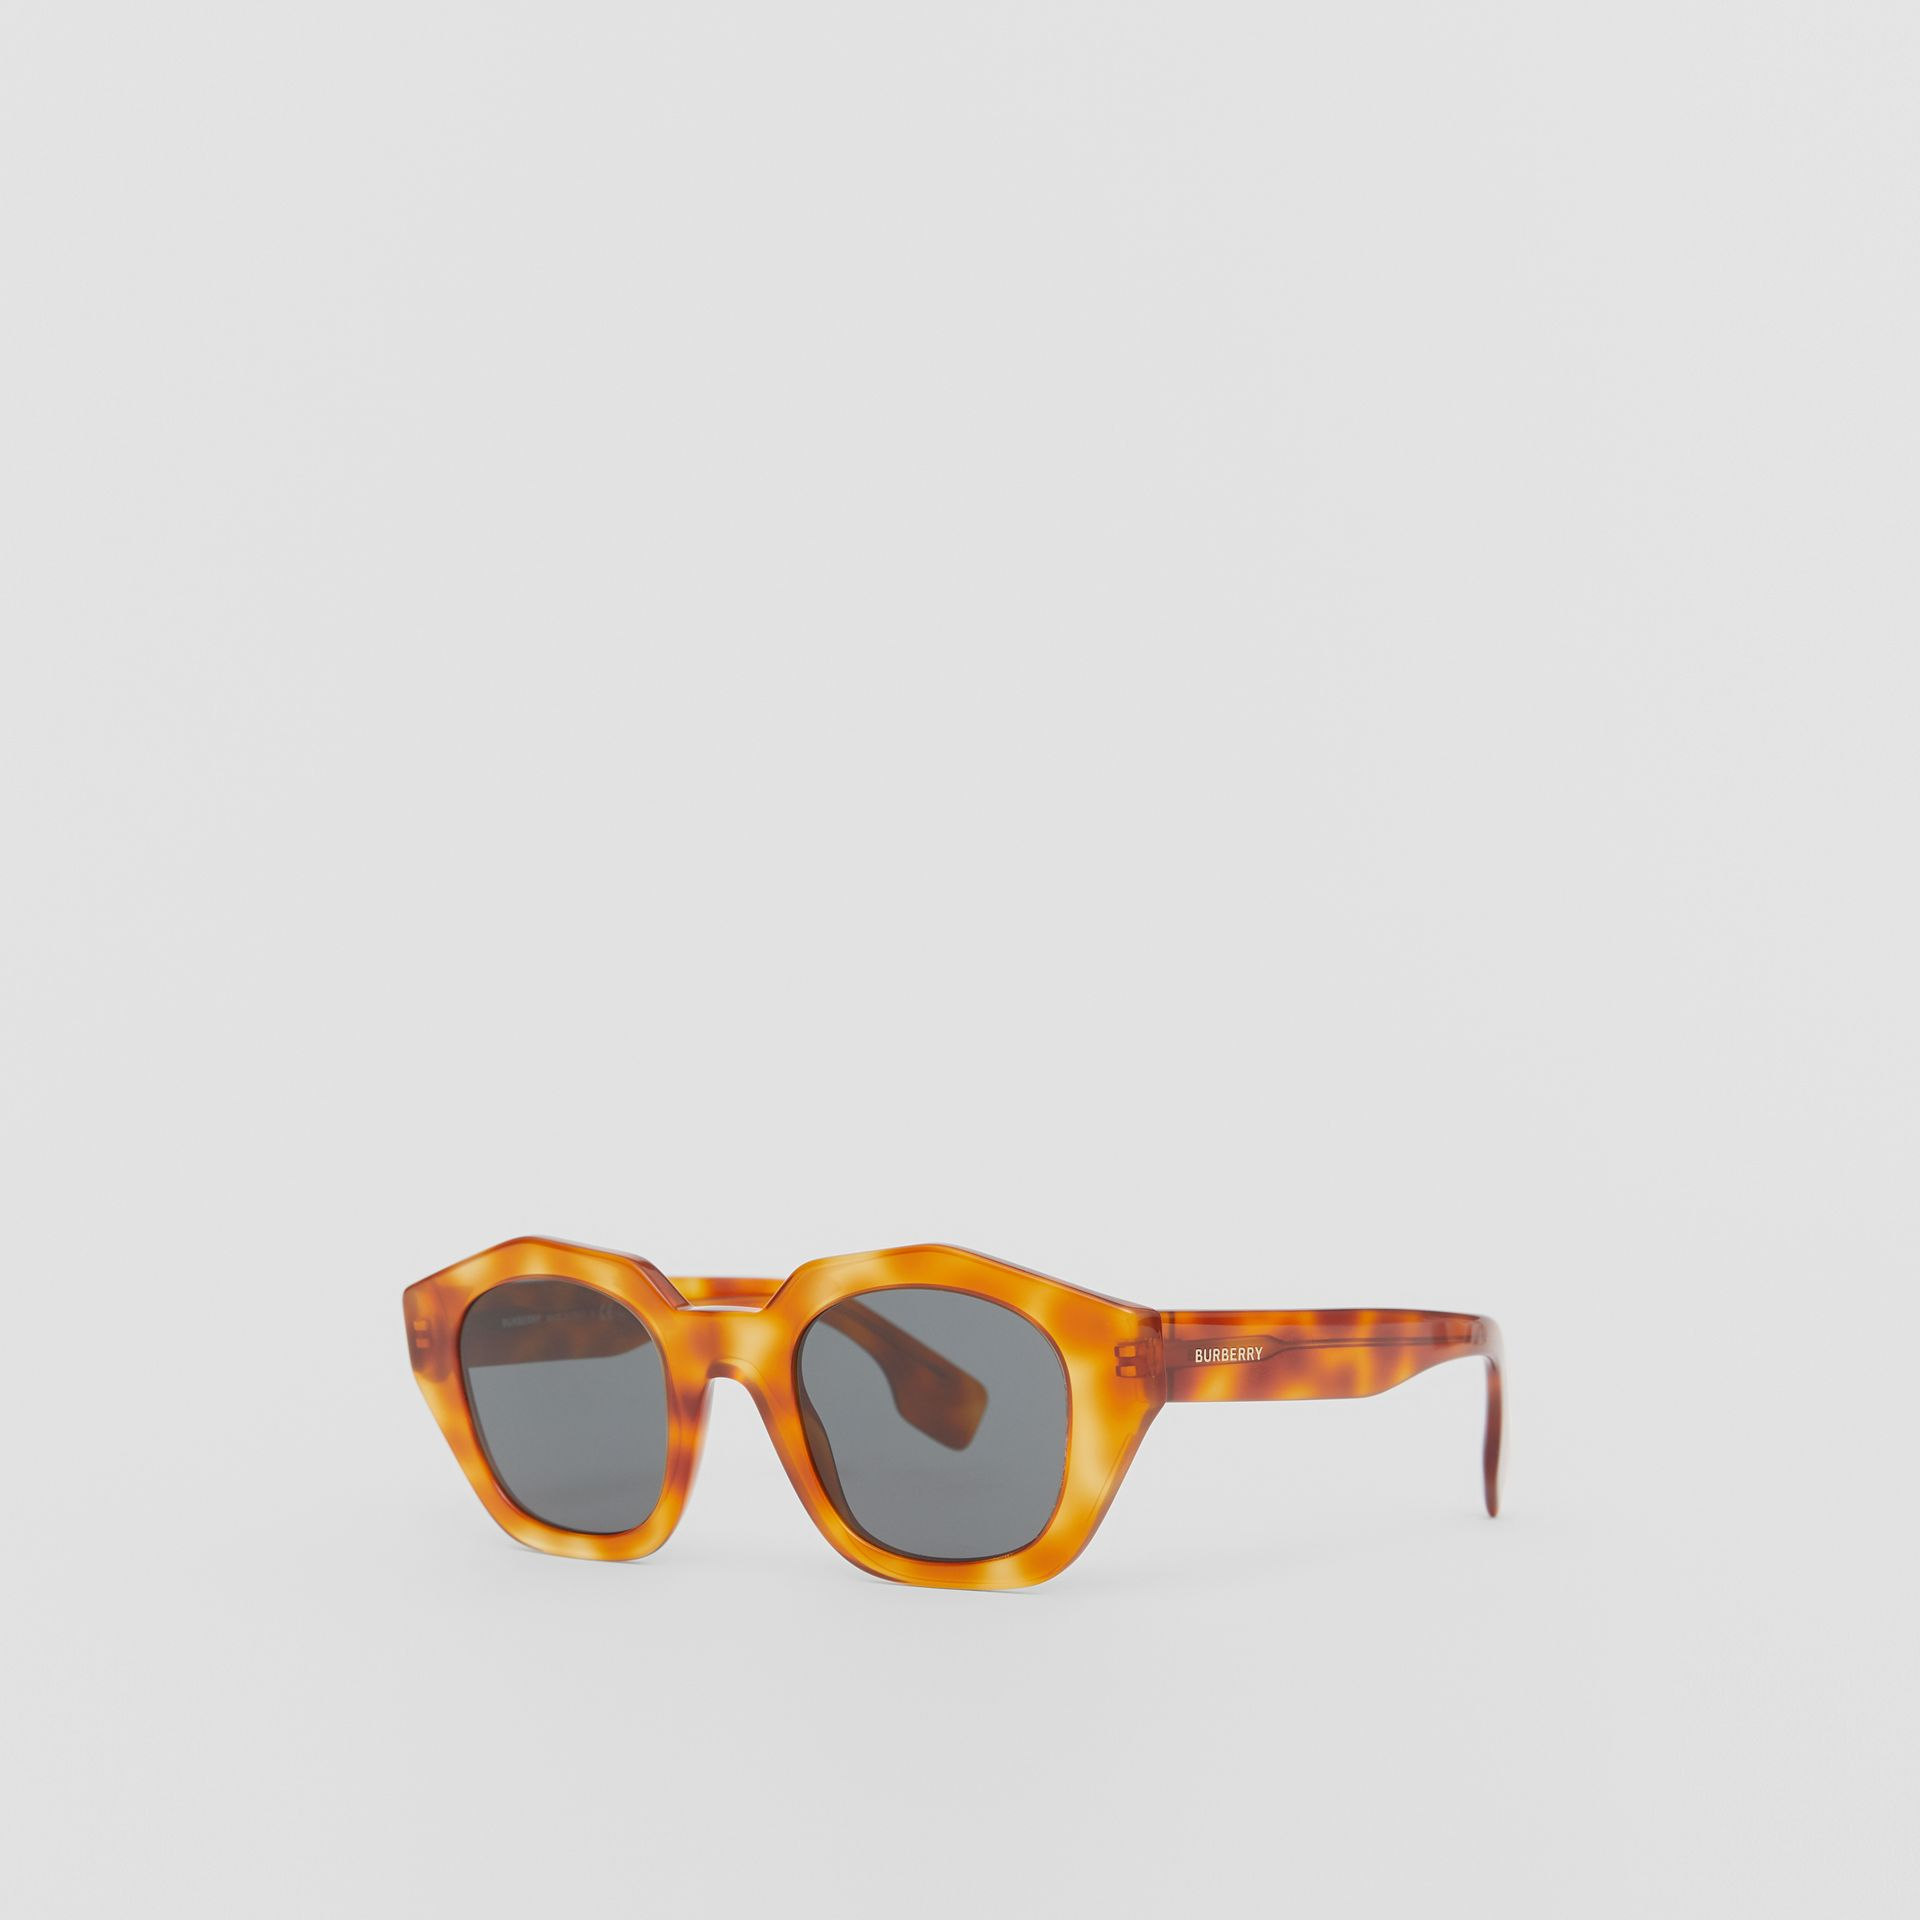 Geometric Frame Sunglasses in Tortoiseshell Amber - Women | Burberry United Kingdom - gallery image 5